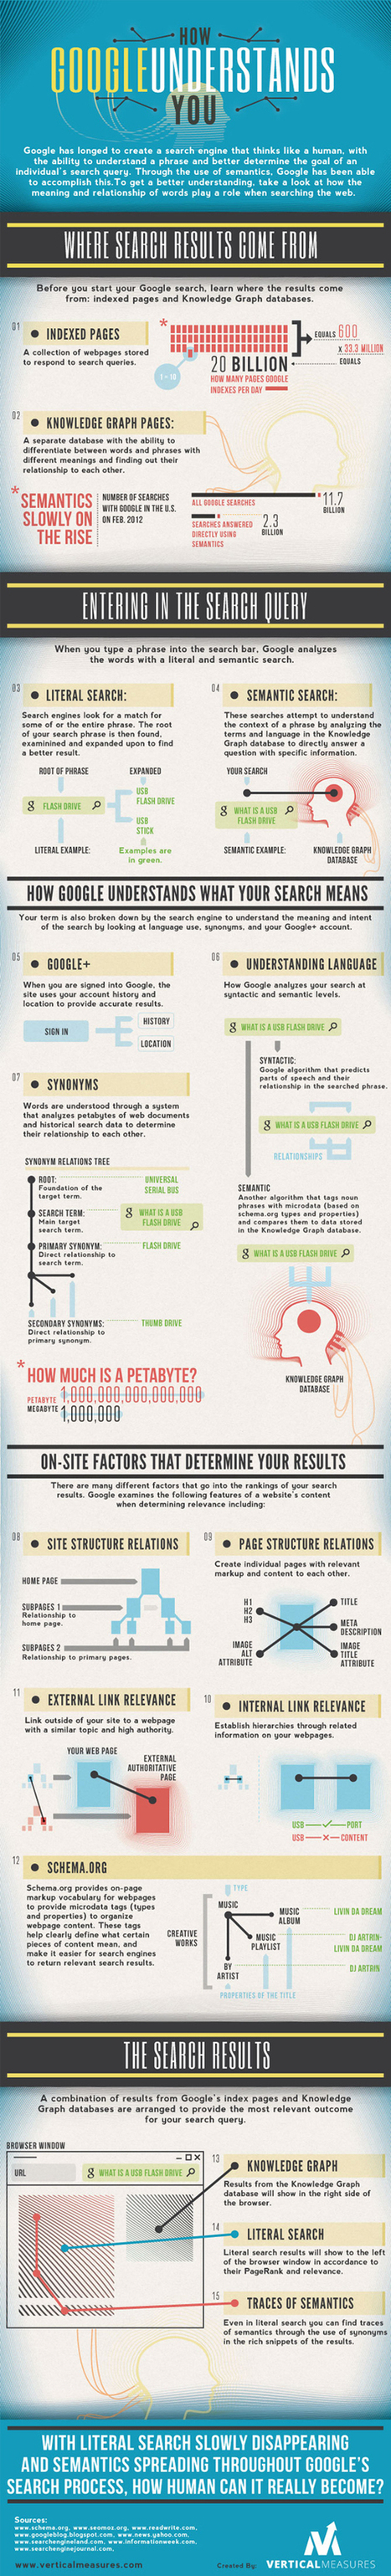 How Google Understands What You Want (Infographic) | Internet marketing | Scoop.it